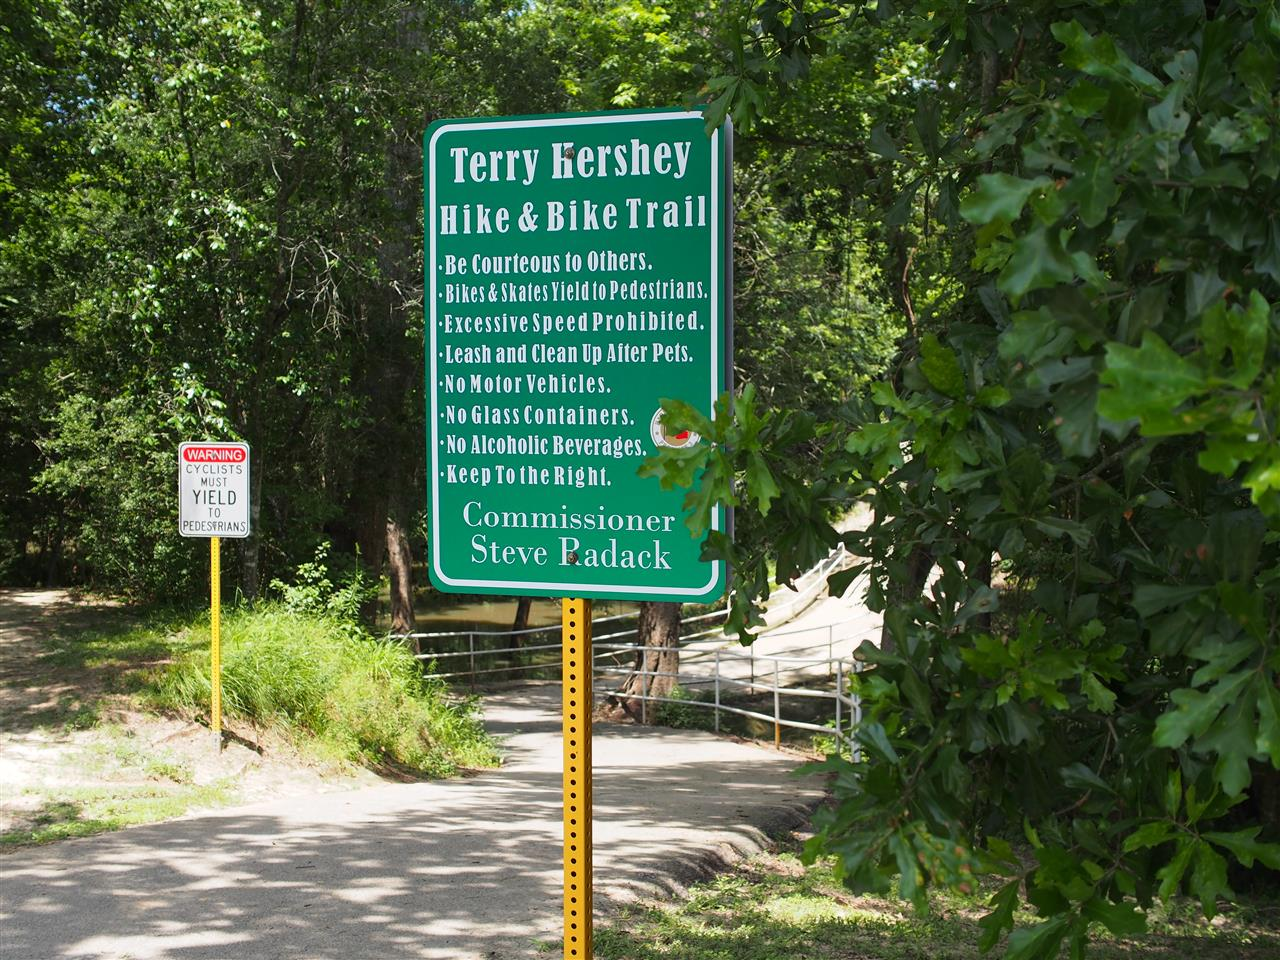 Terry Hershey Park is a county park that runs parallel to a 6 mile western stretch of the Buffalo Bayou from State Highway 6 to the Sam Houston Tollway. The park is a popular destination for residents living in the neighborhoods along the park.